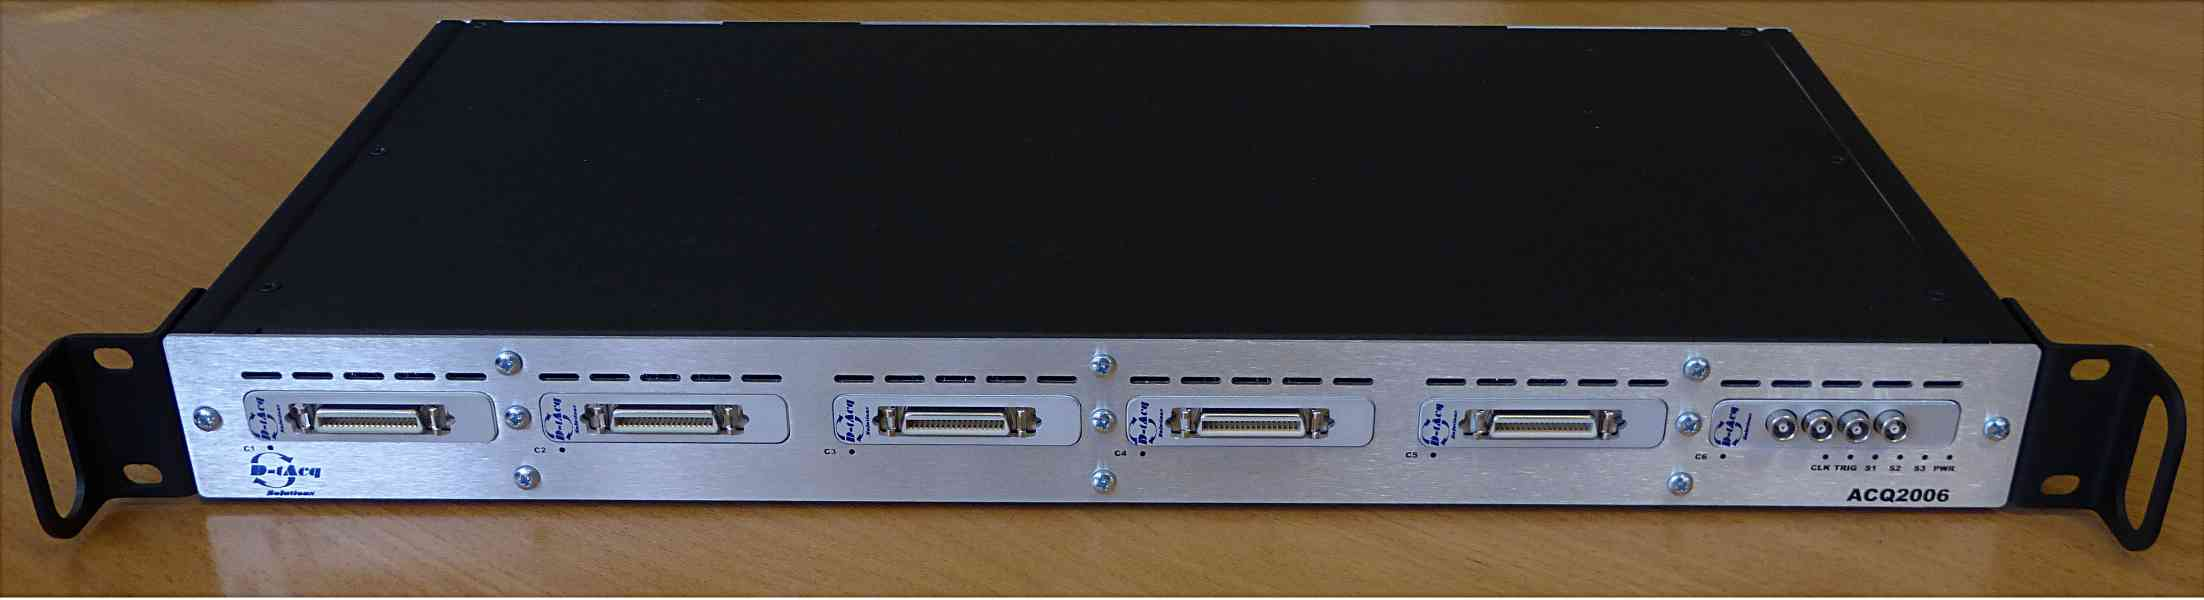 ACQ2006, 6 site DAQ appliance to 192 channels